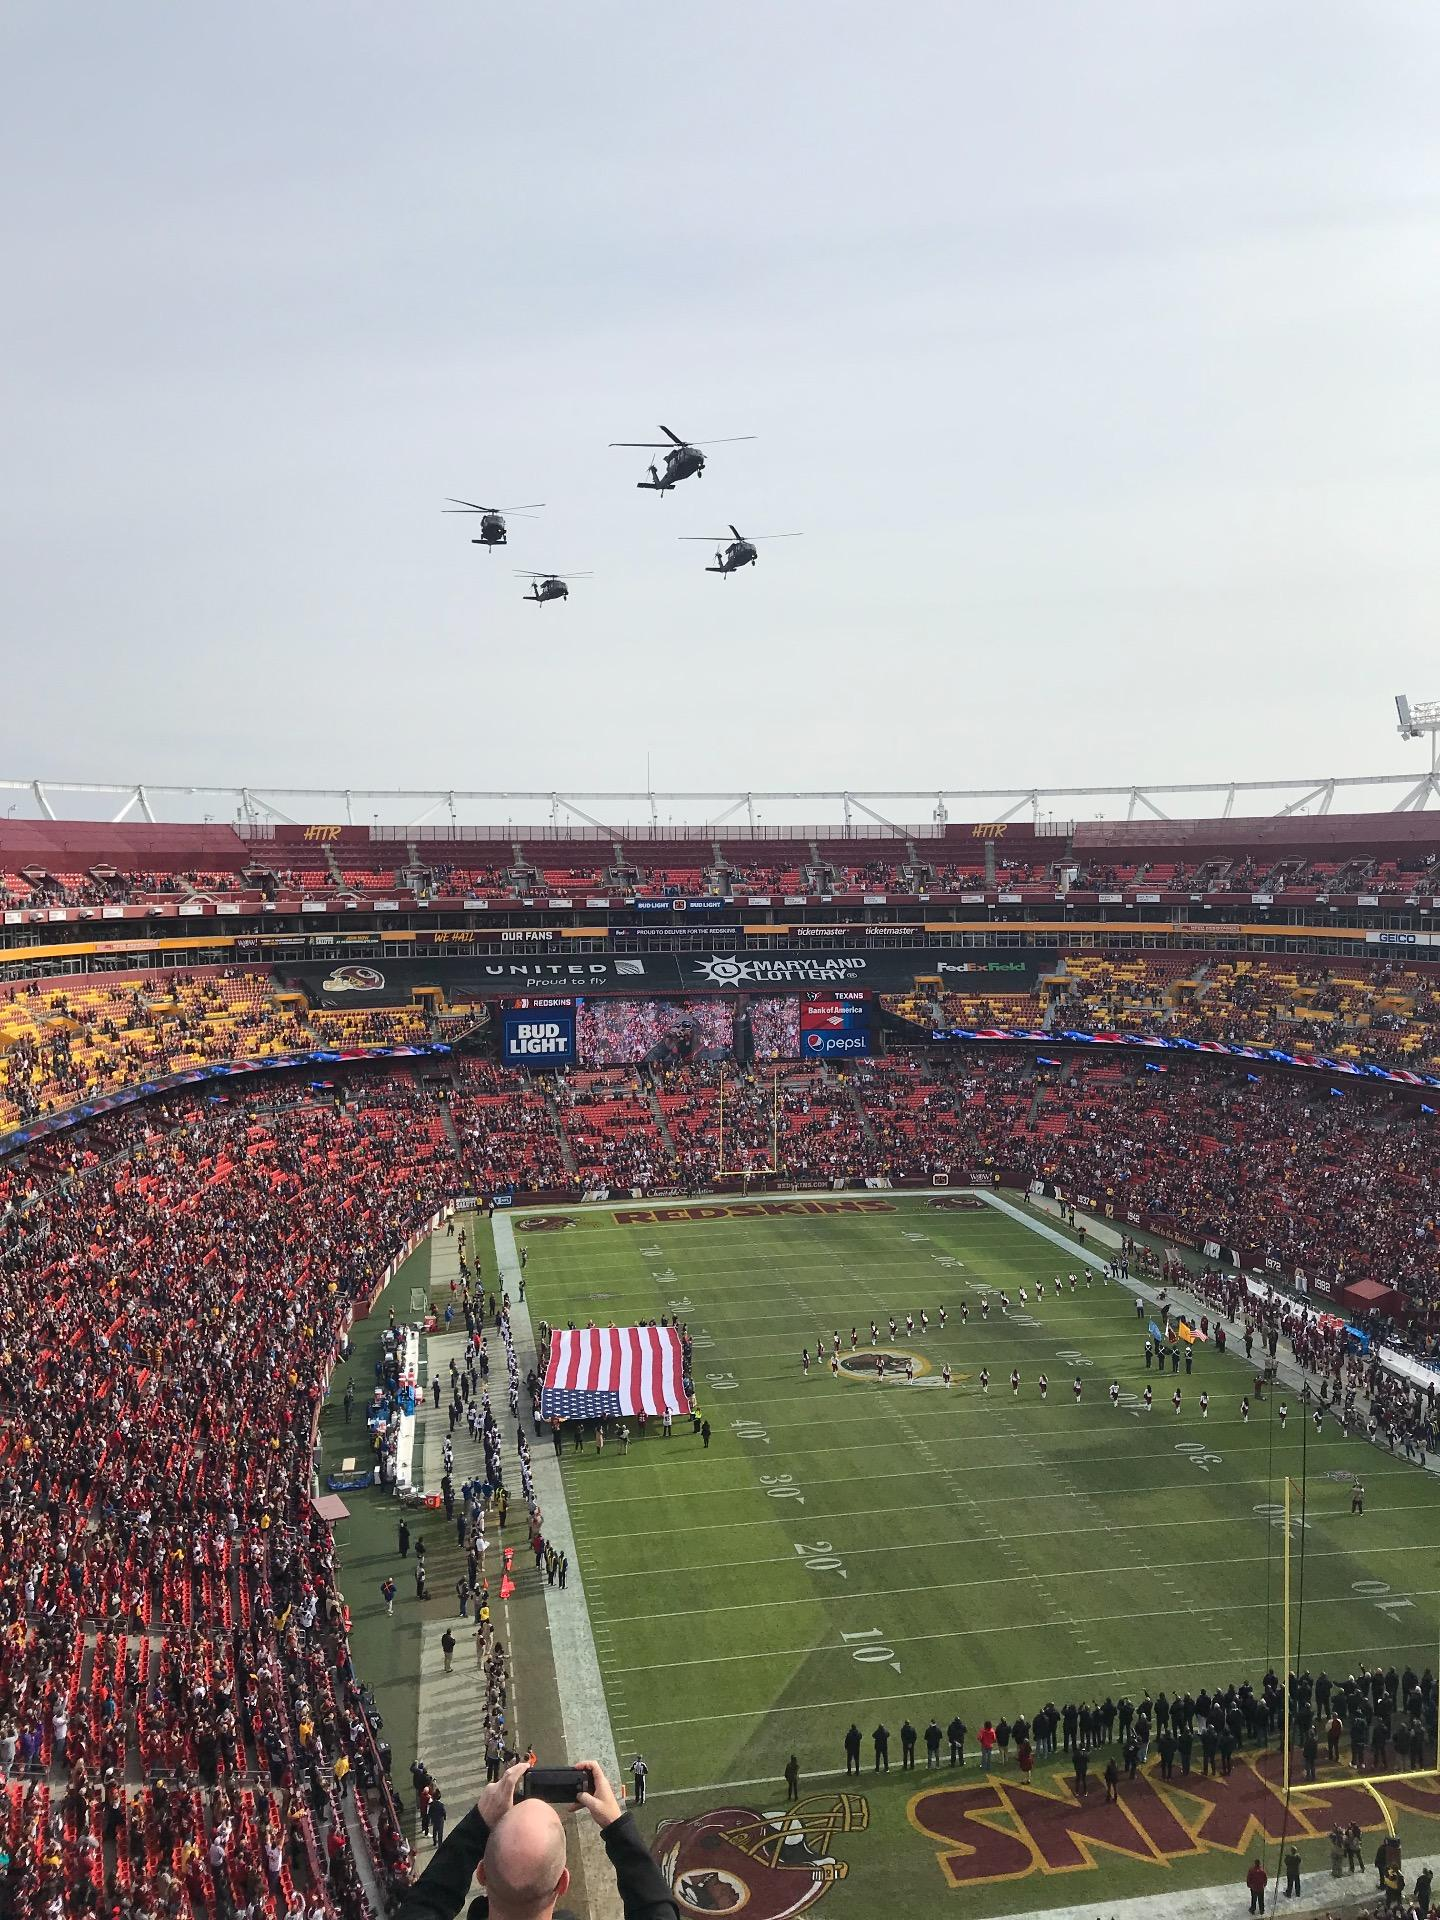 FedEx Field Section 416 Row 6 Seat 8